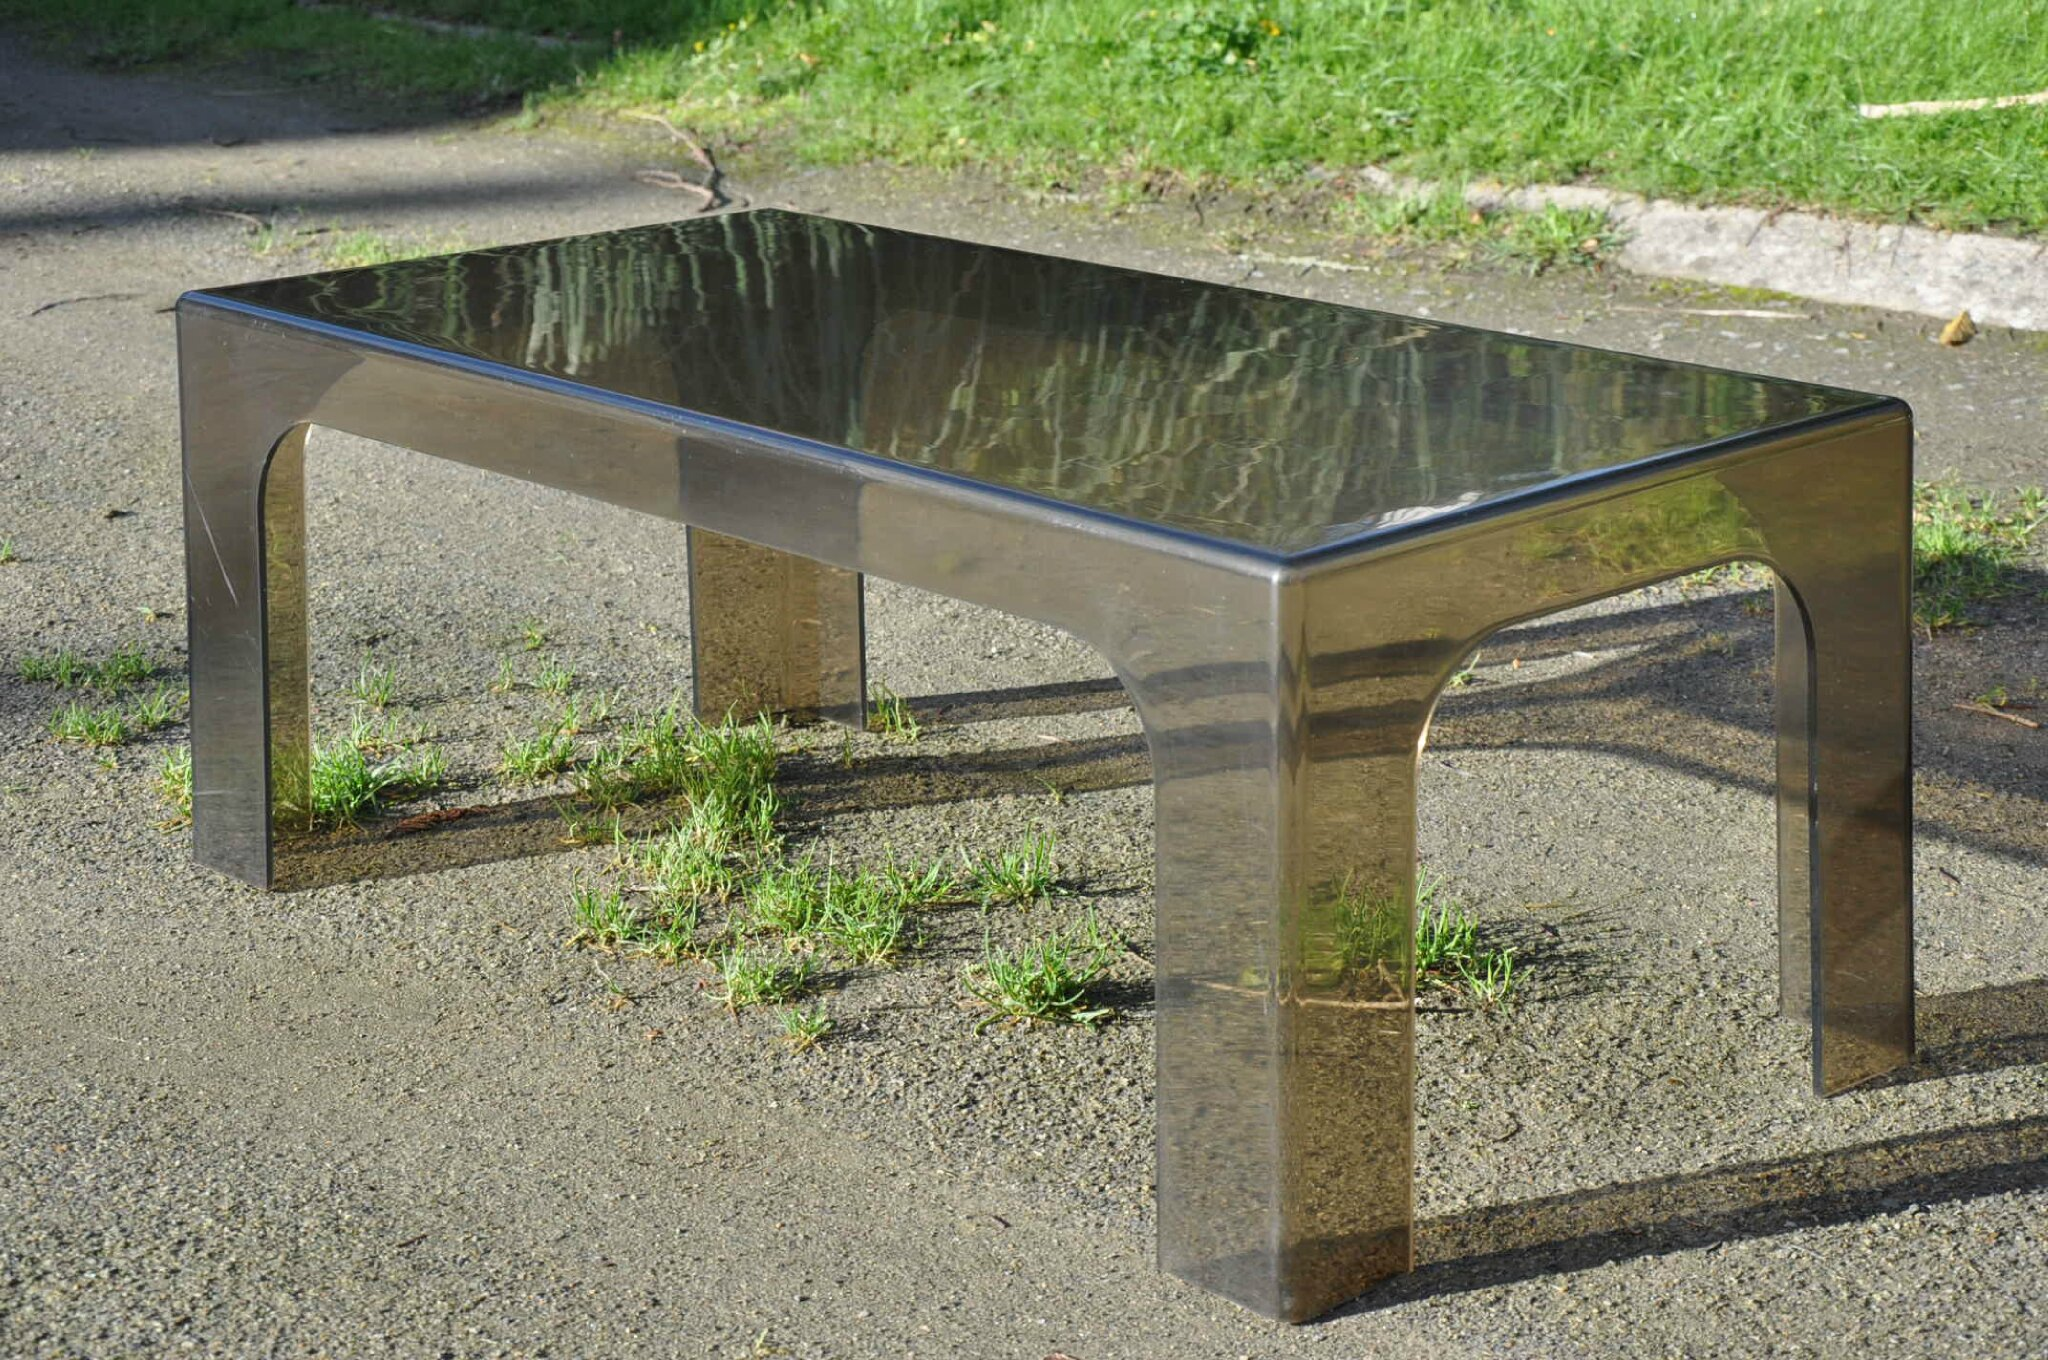 107982657_o Unique De Table Basse Plexiglas